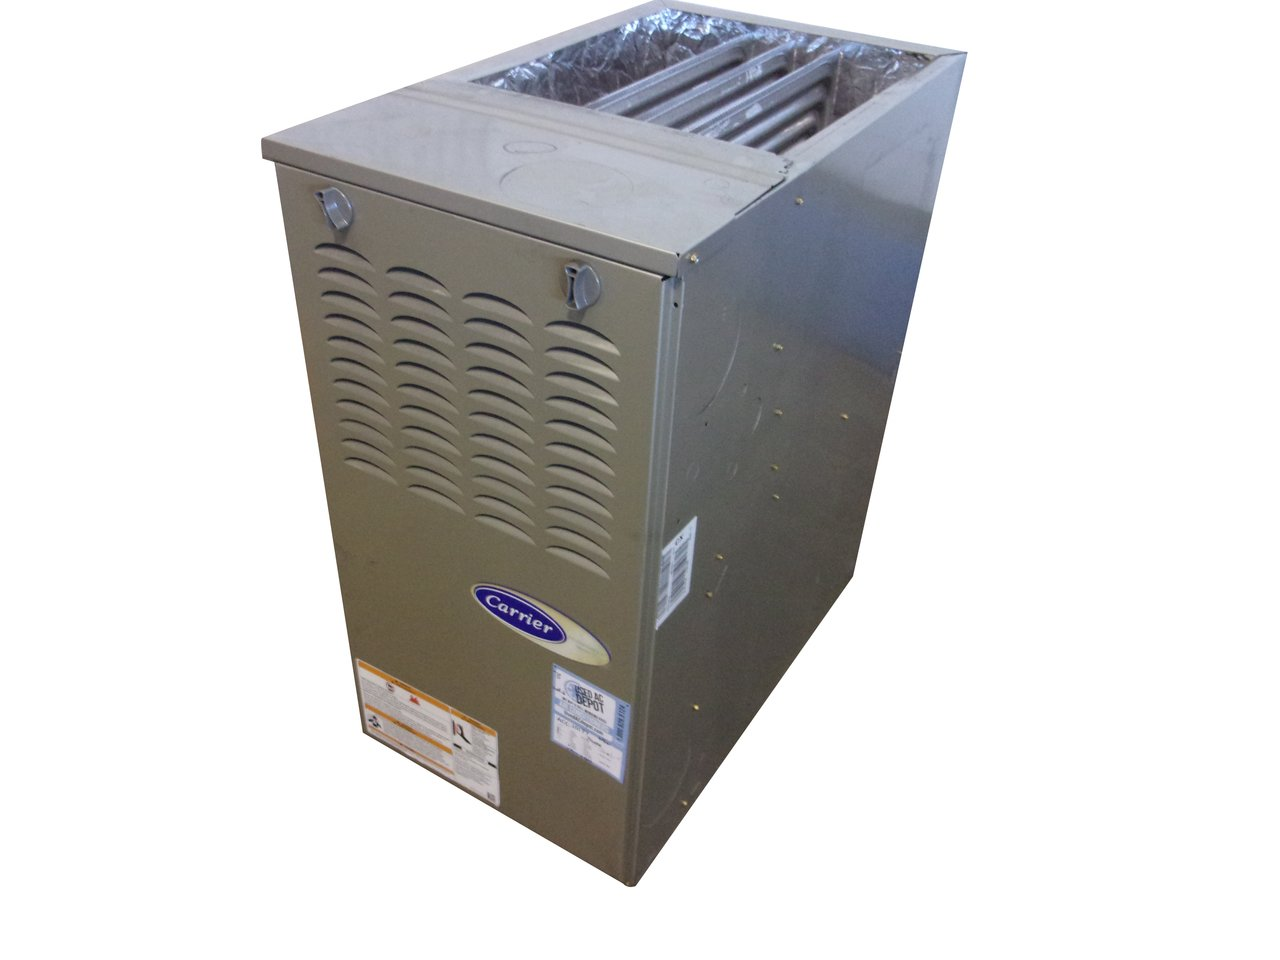 CARRIER ''Scratch & Dent'' Central Air Conditioner Furnace 58PHB070-1-16 ACC-10177